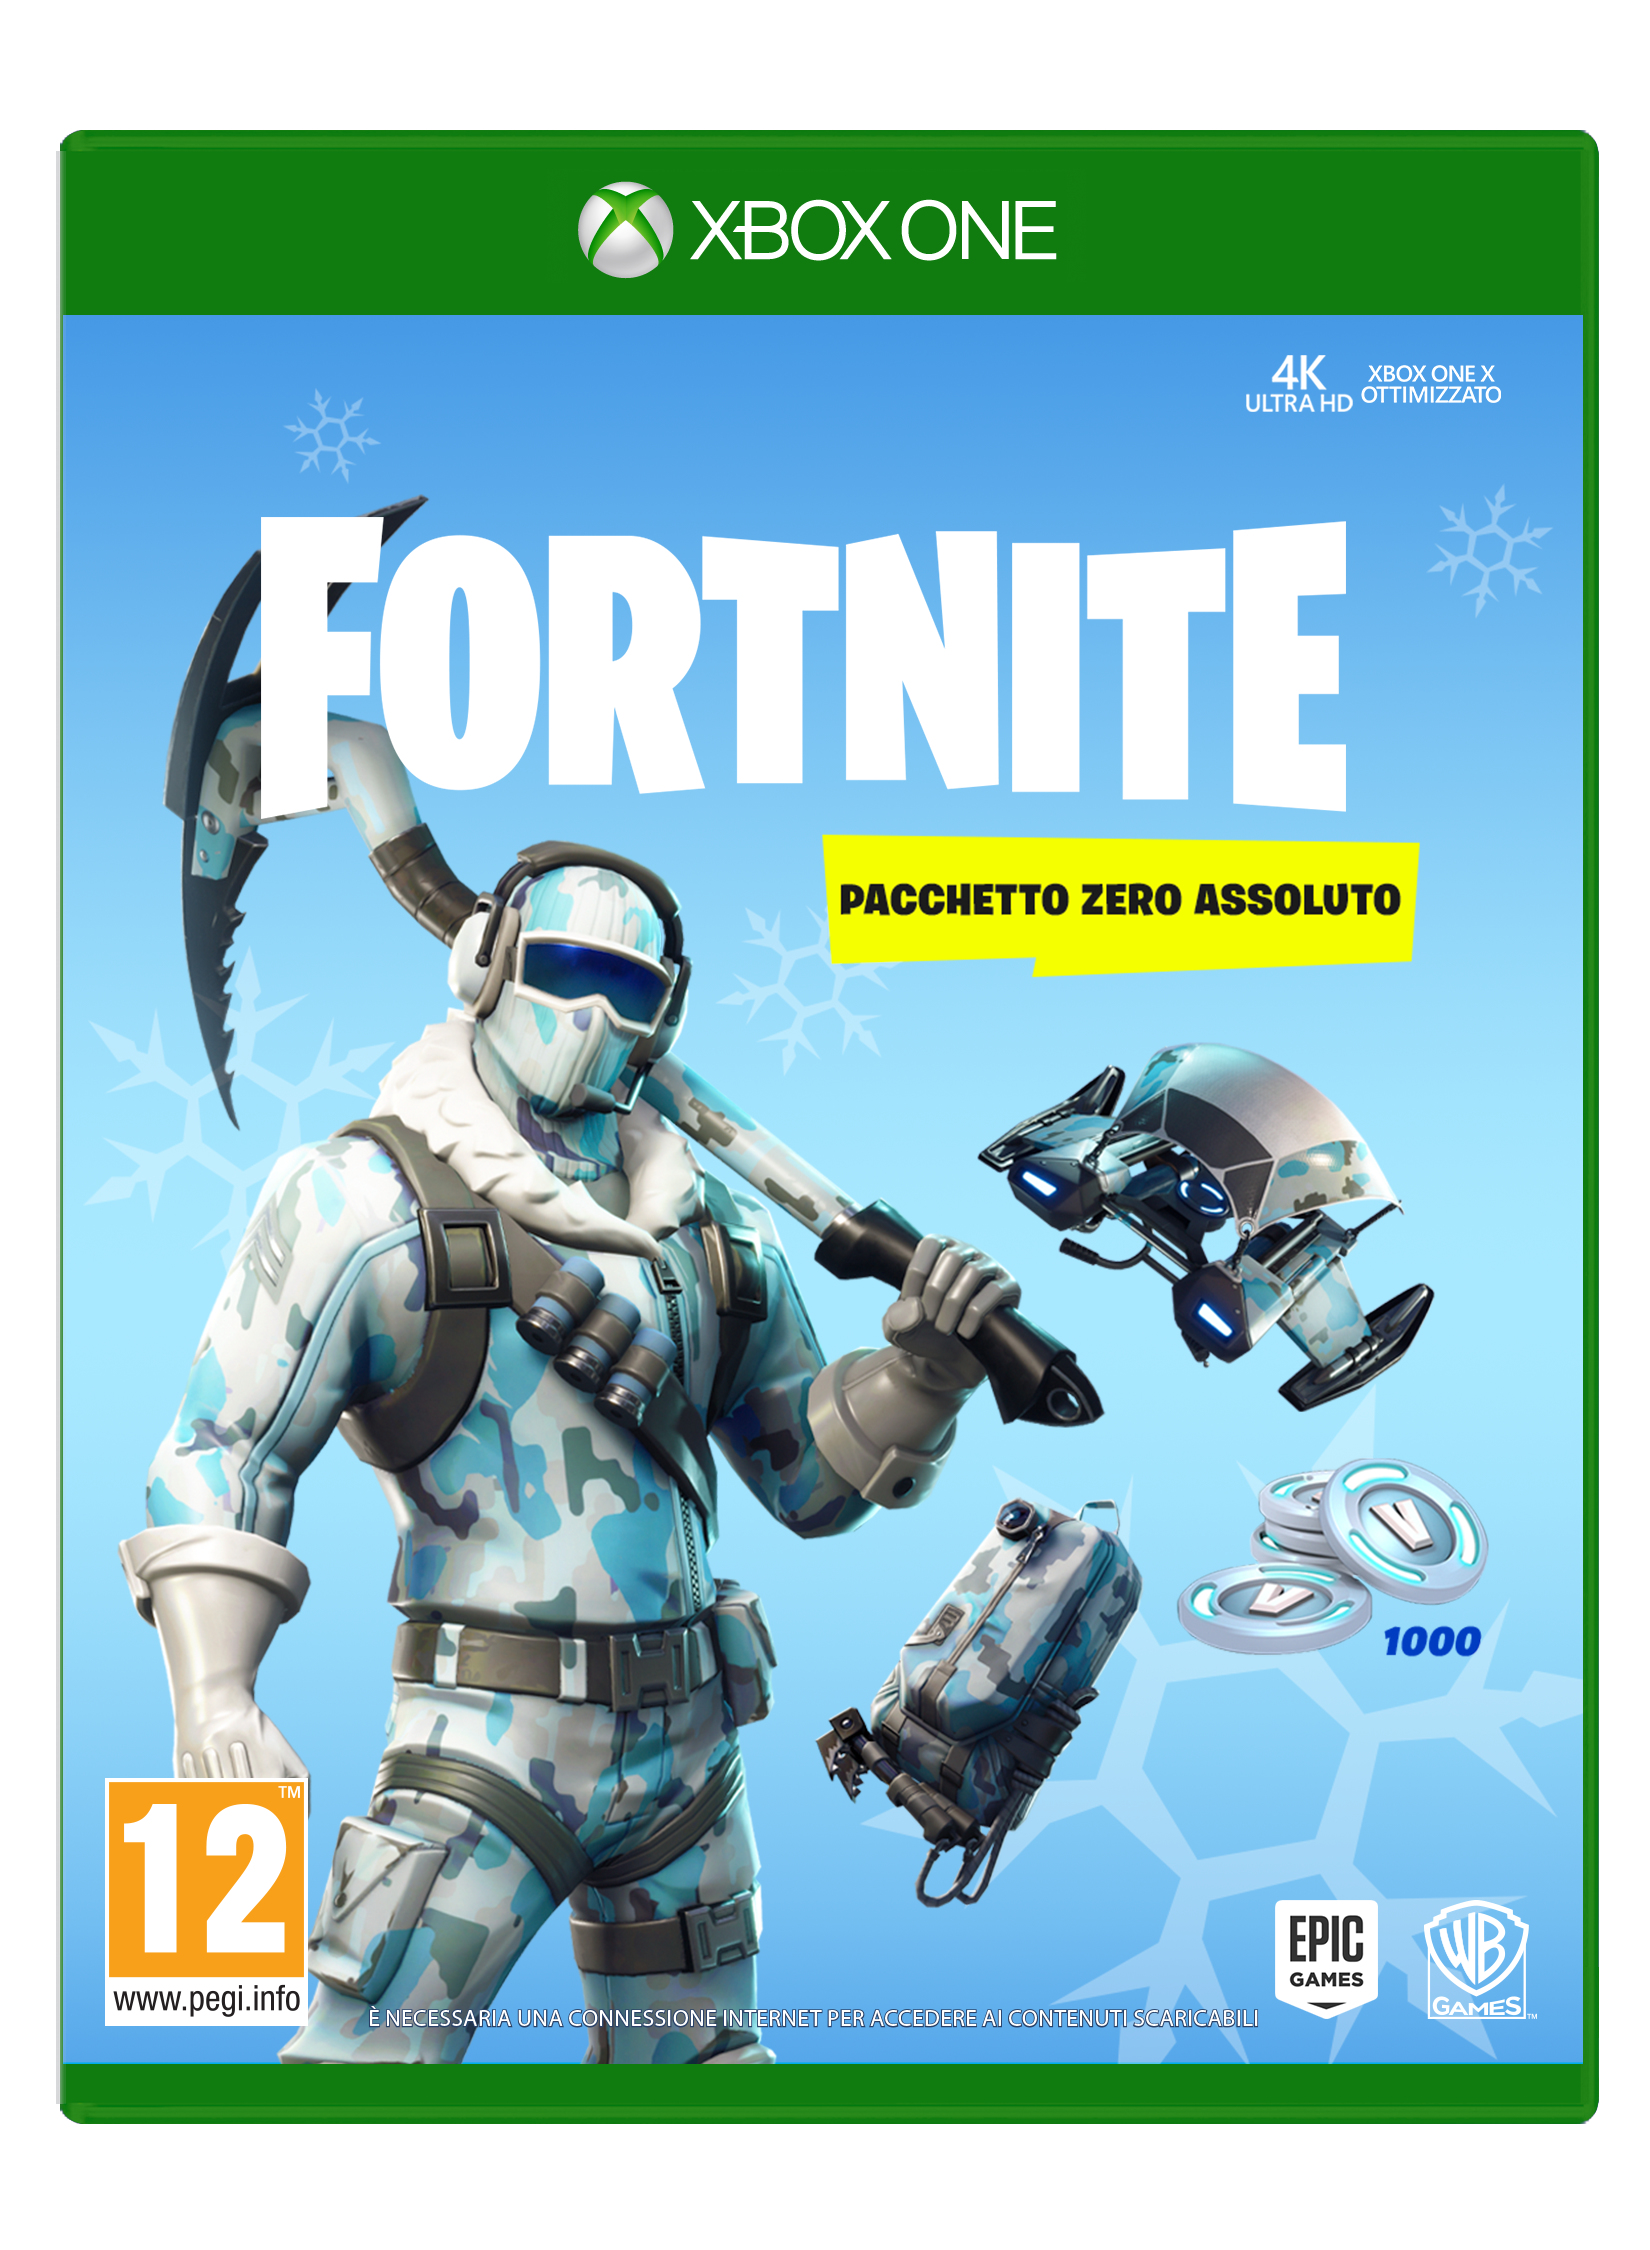 Warner Bros Game - Xbox One Fortnite: Pacchetto Zero Assoluto